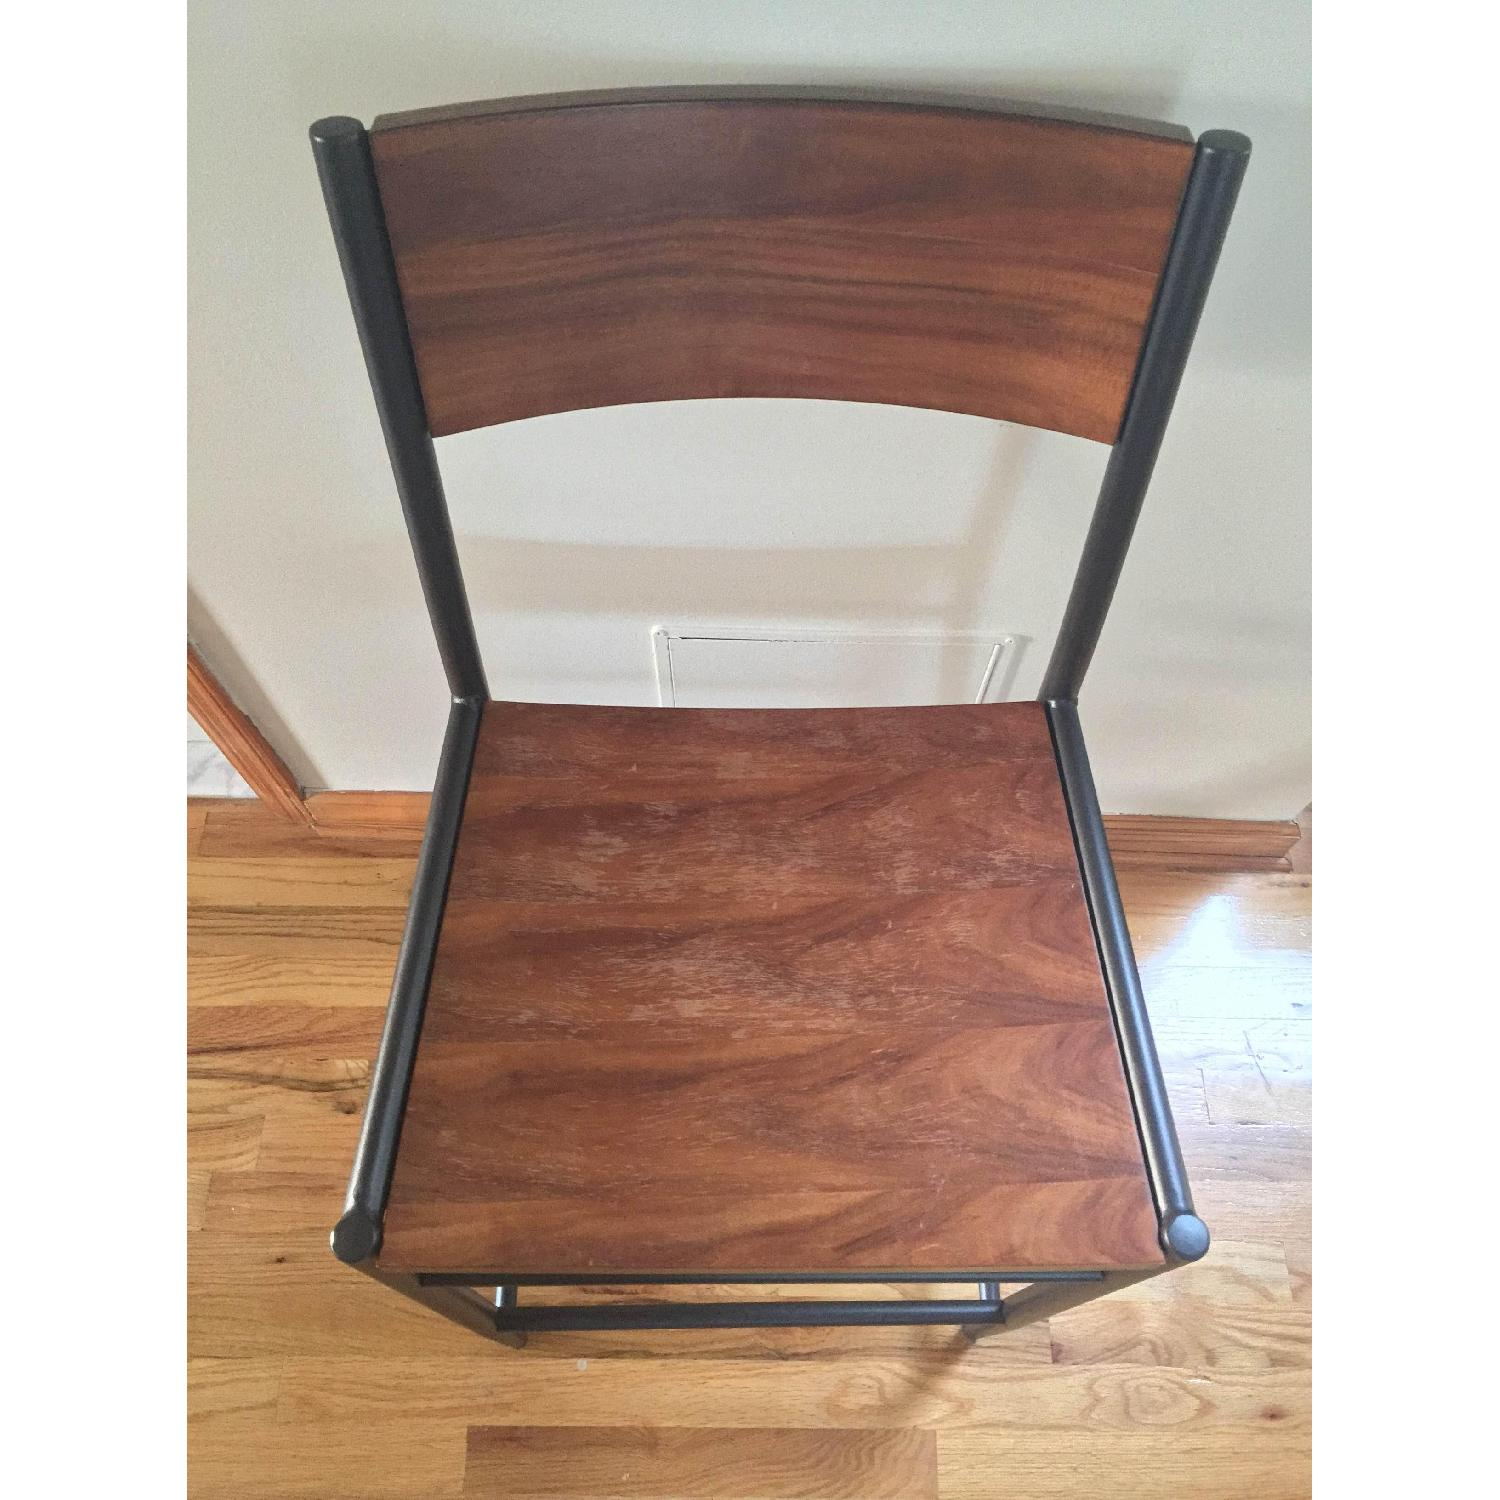 West Elm Table w/ 2 Chairs - image-8